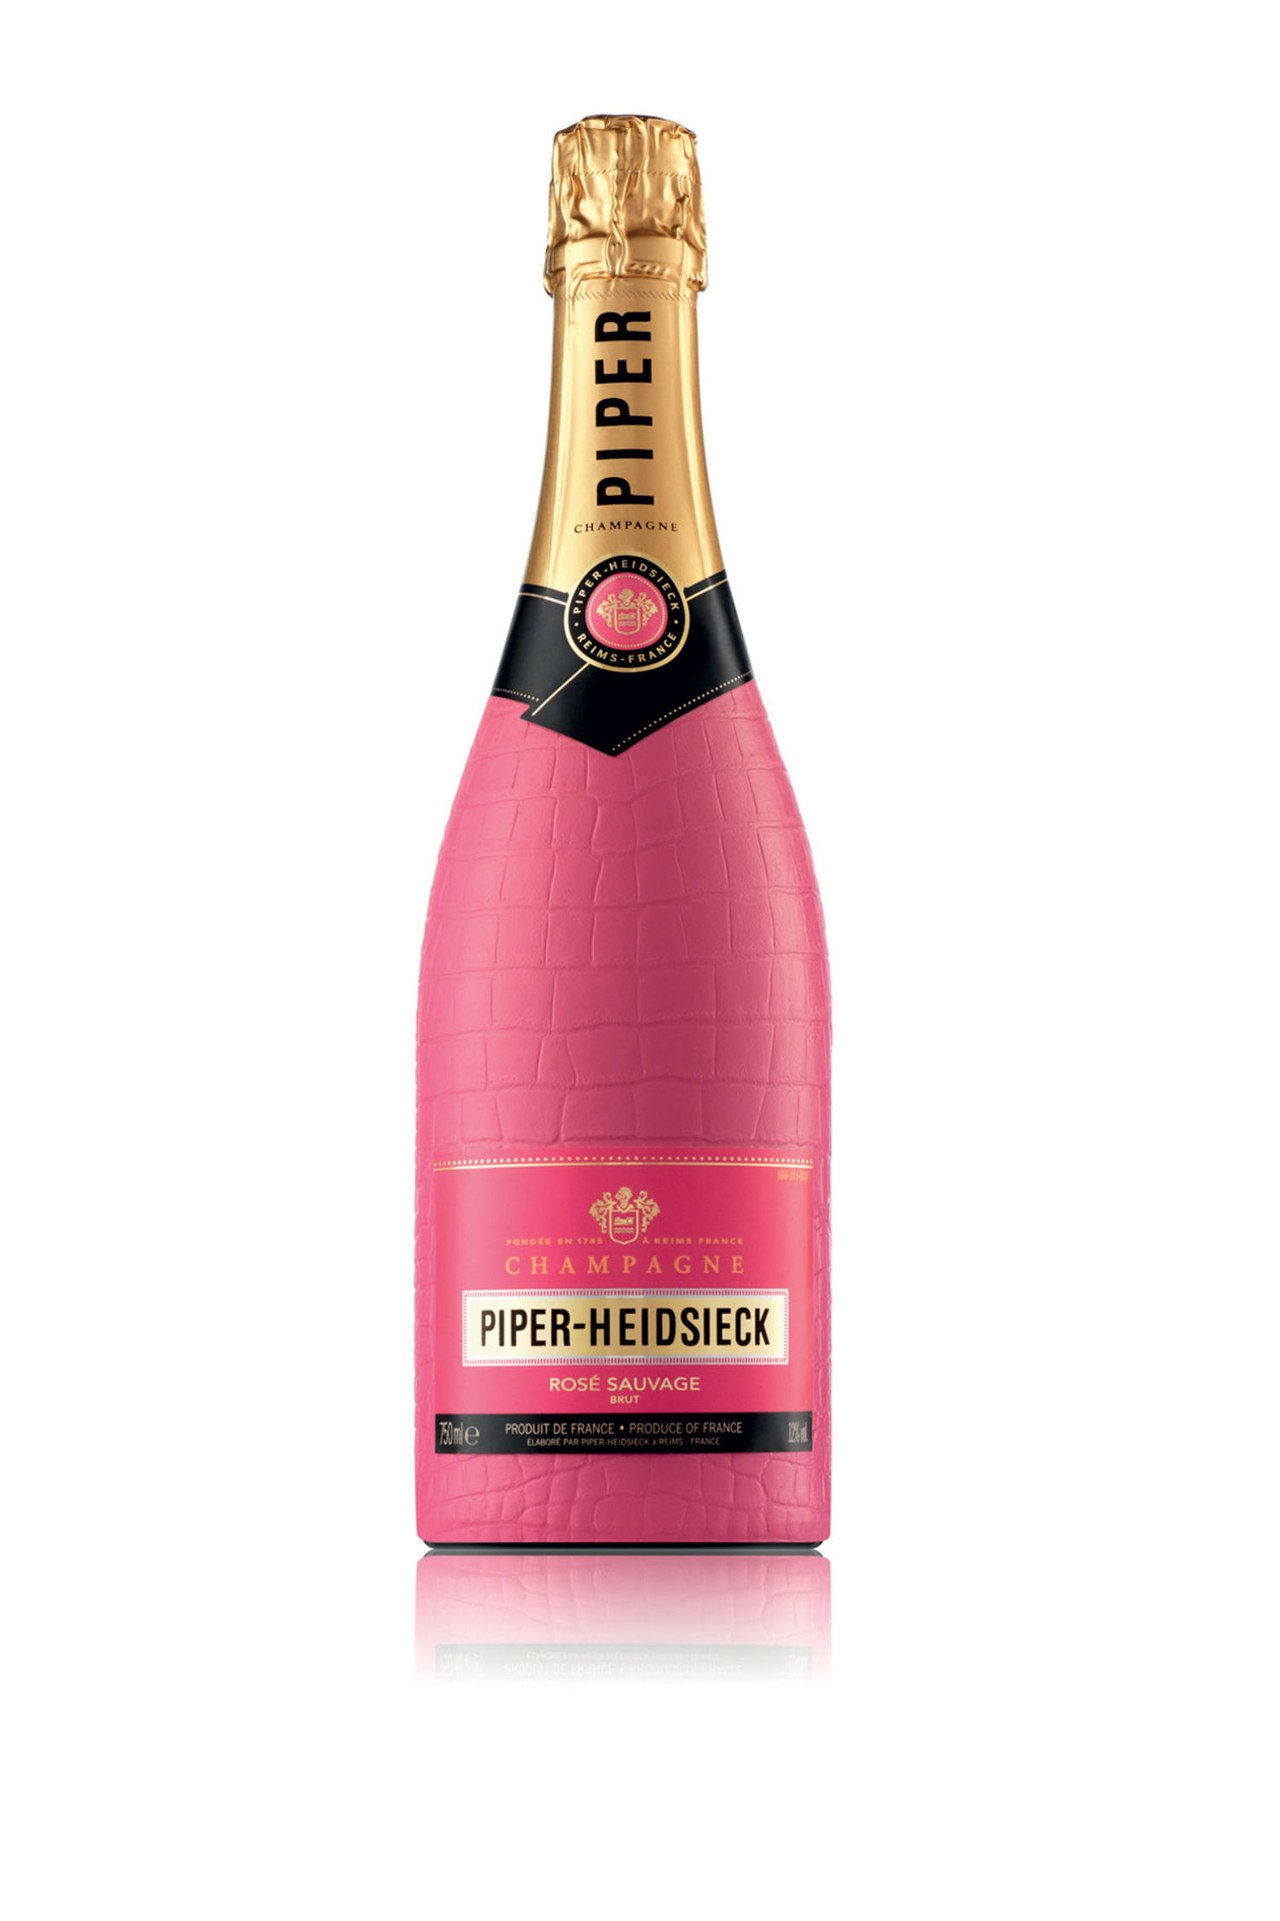 Cornemuseur Heidsieck Bodyguard Rose Sauvage Champagne in Hot Pink Croc Bottle